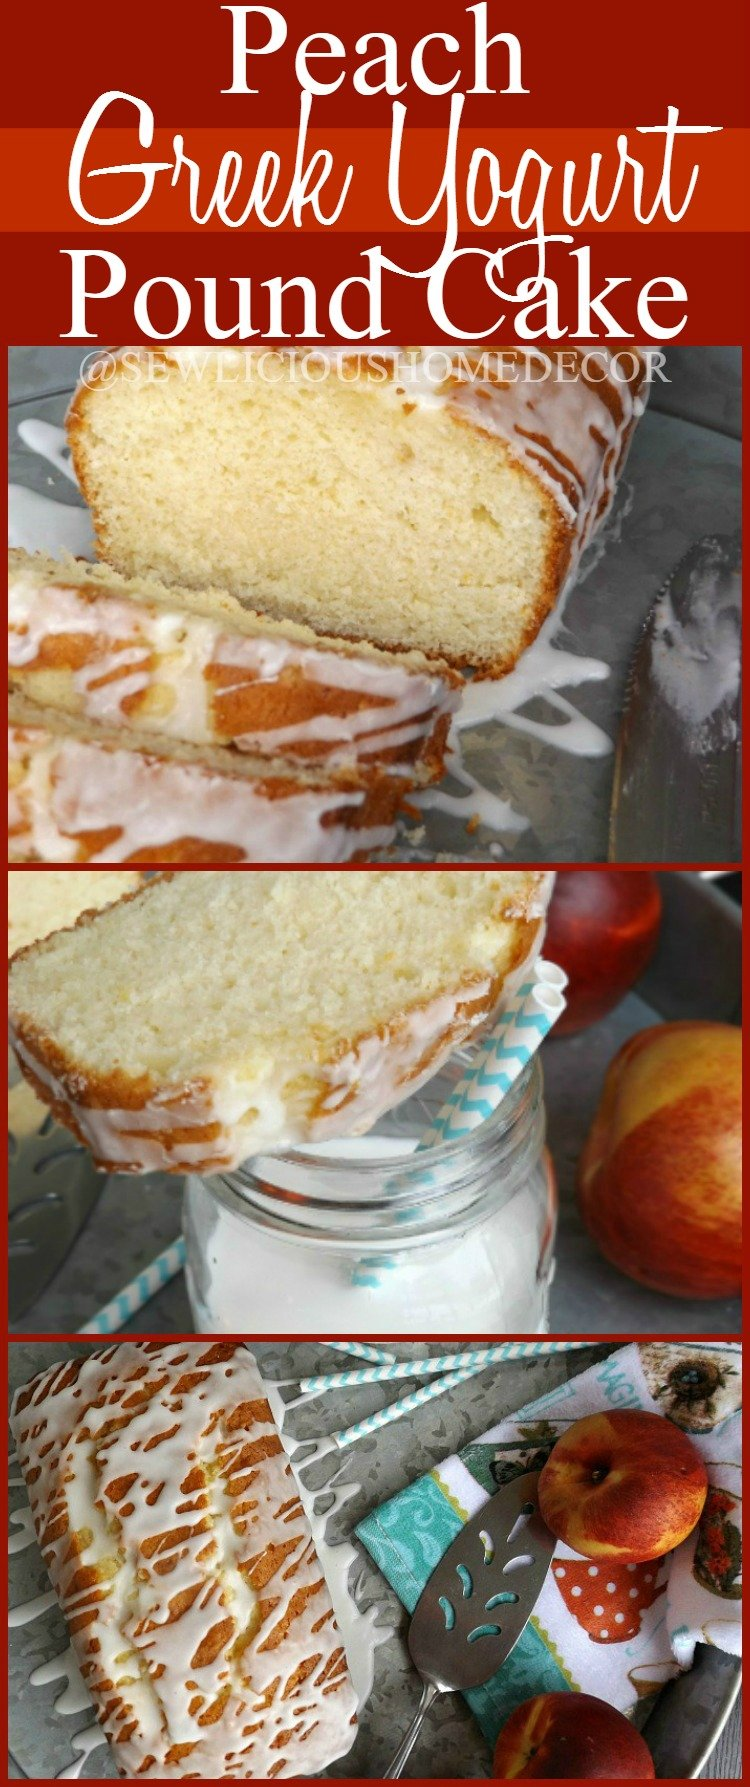 Peach Greek Yogurt Pound Cake Dessert at sewlicioushomedecor.com